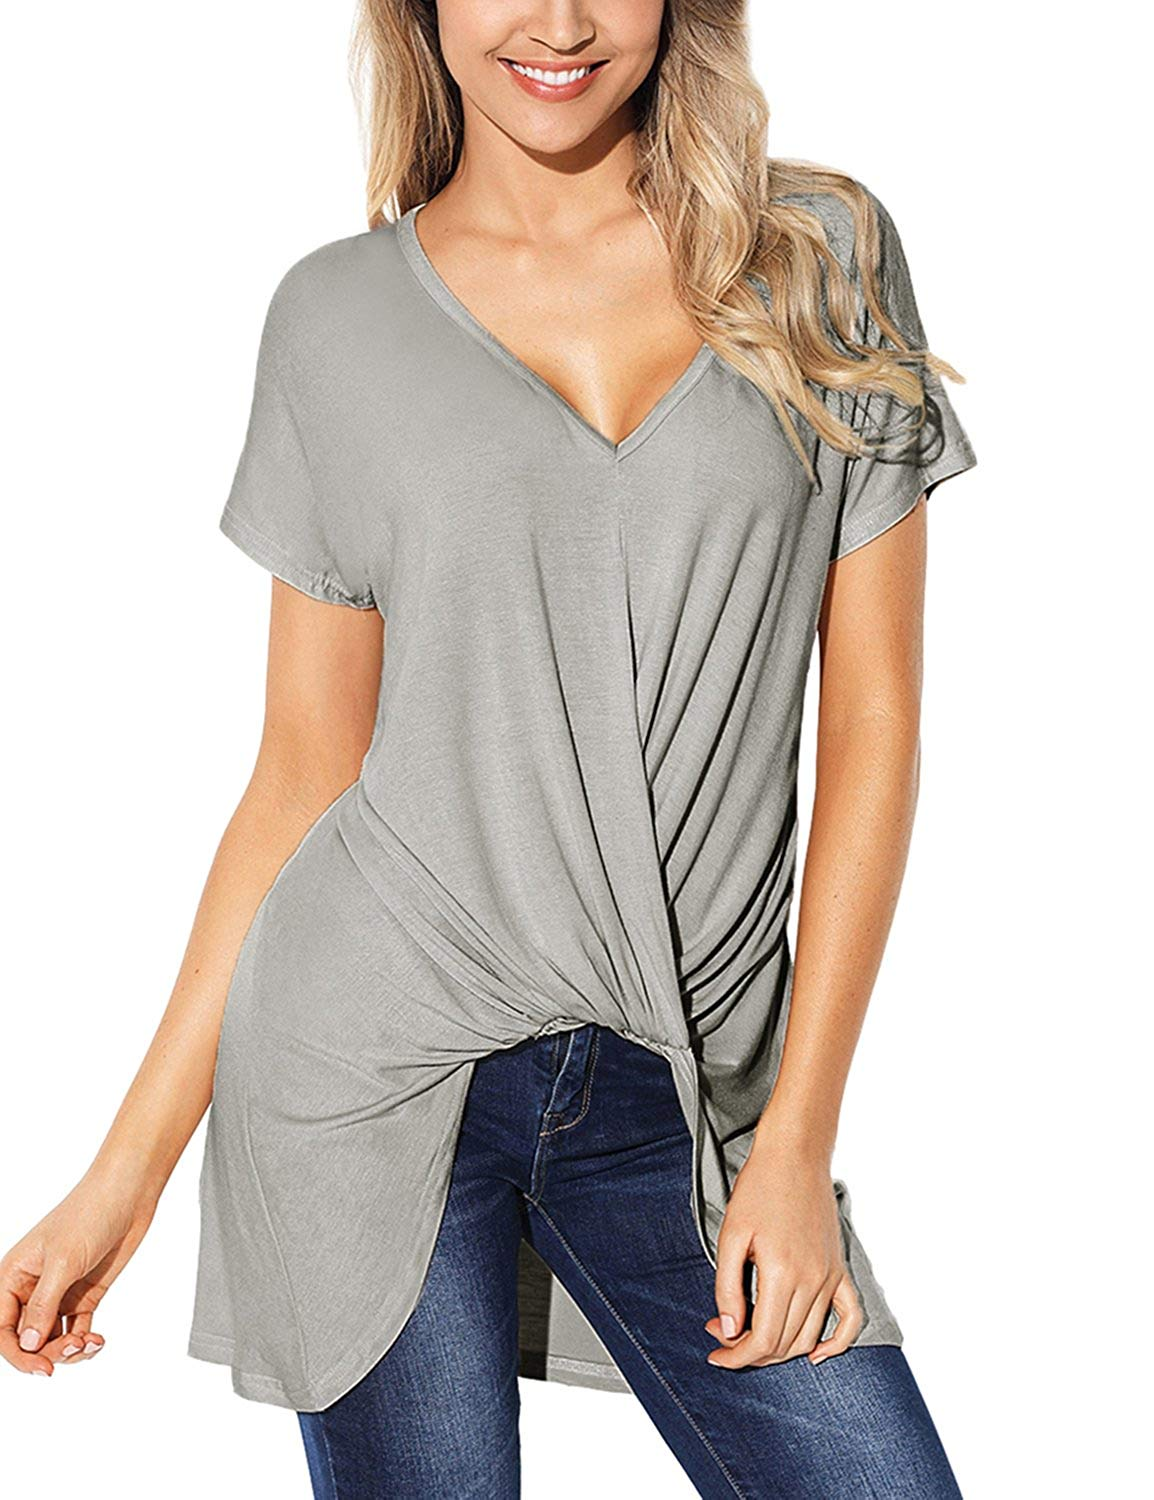 ad57442ed6322 Get Quotations · Utyful Women s Casual Short Sleeve High-Low Twist Front  Tunic Top Blouse Shirt